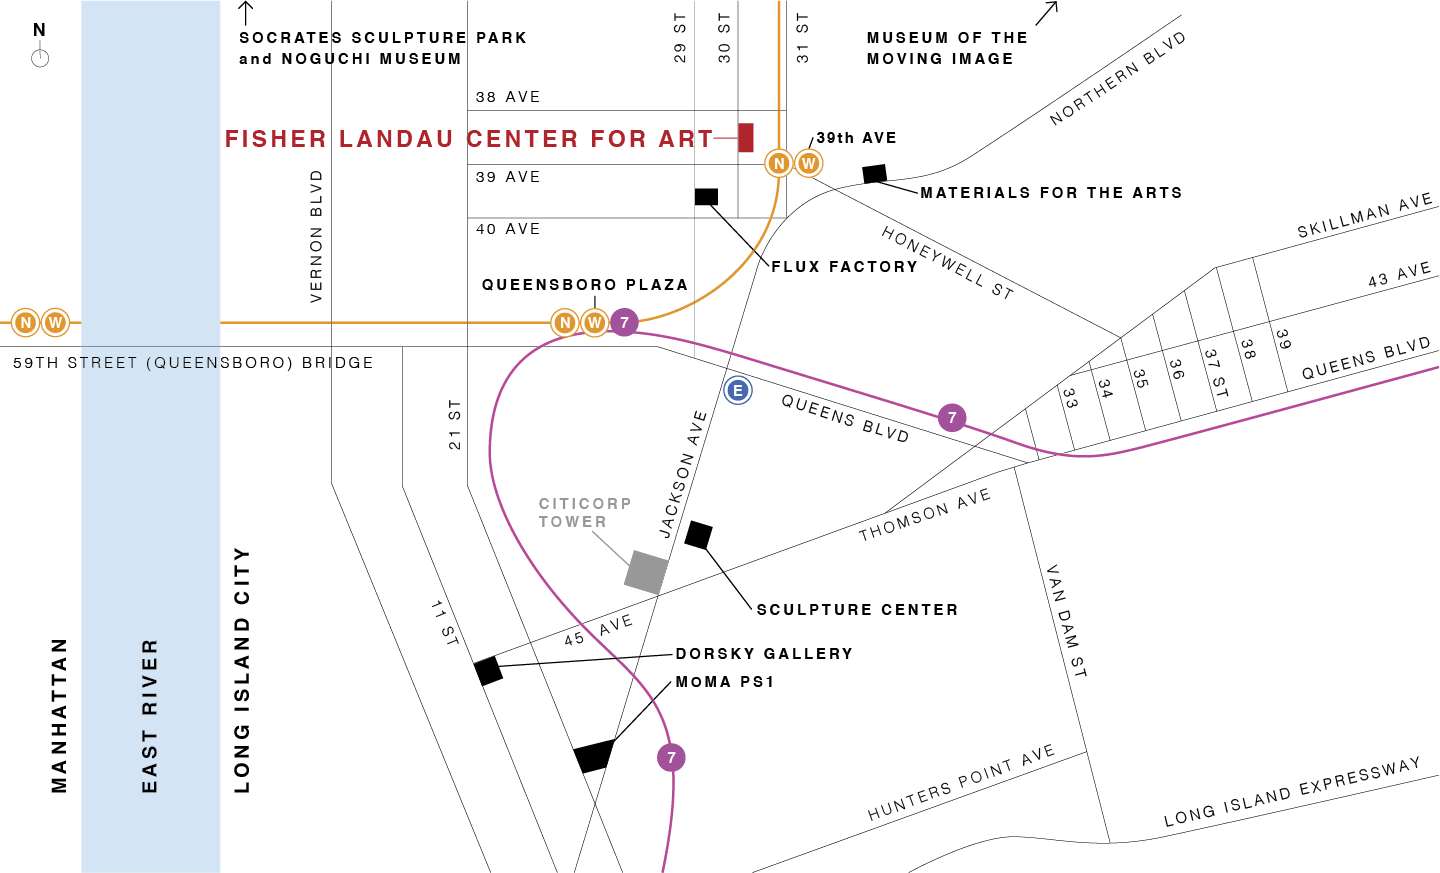 map of Long Island City cultural attractions